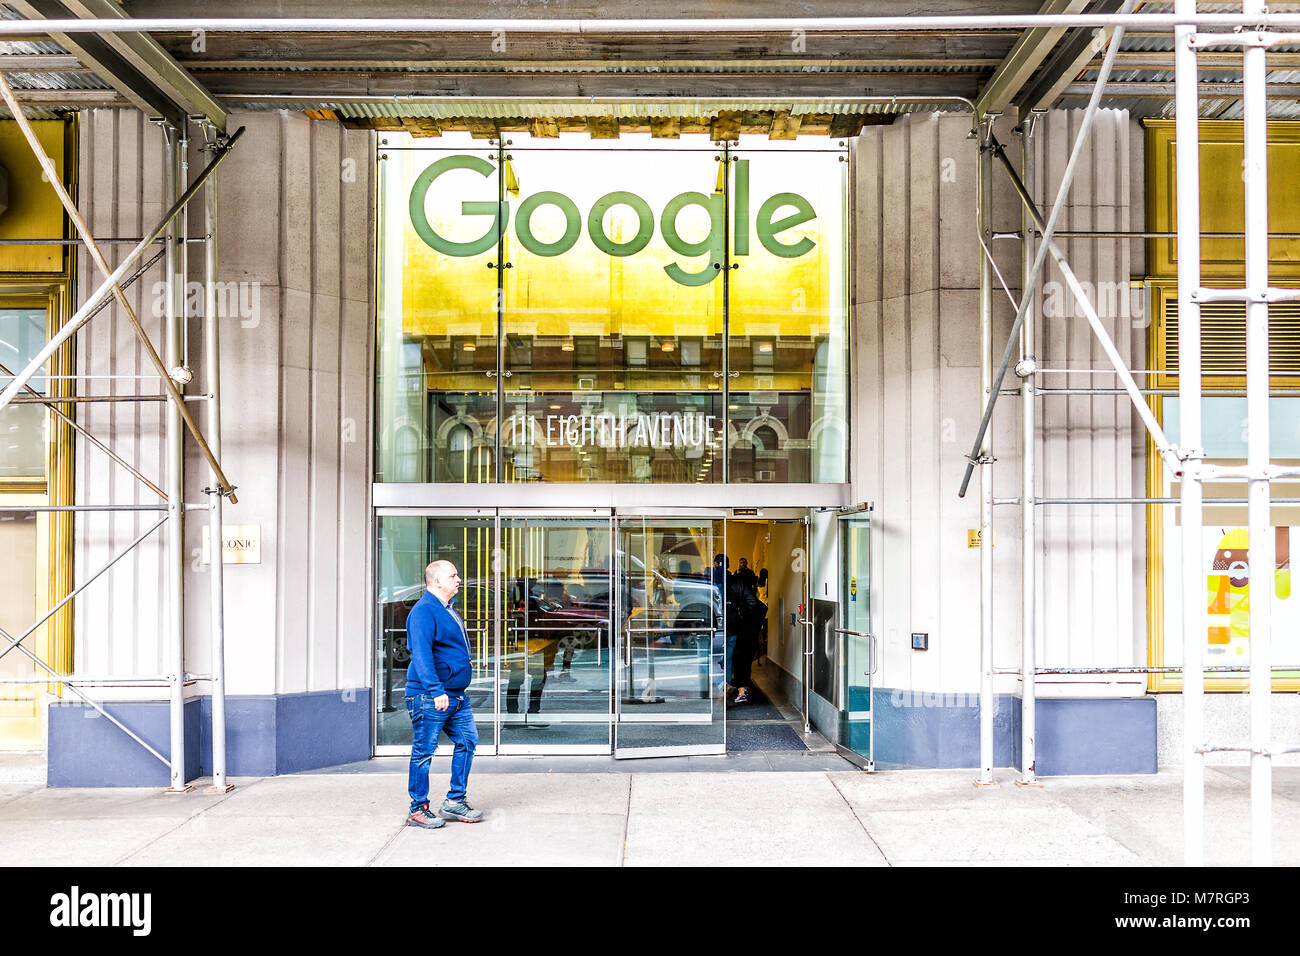 New York City, USA - October 30, 2017: Google Company Office Green Sign In  Downtown Lower Chelsea Neighborhood District Manhattan NYC, People Entering